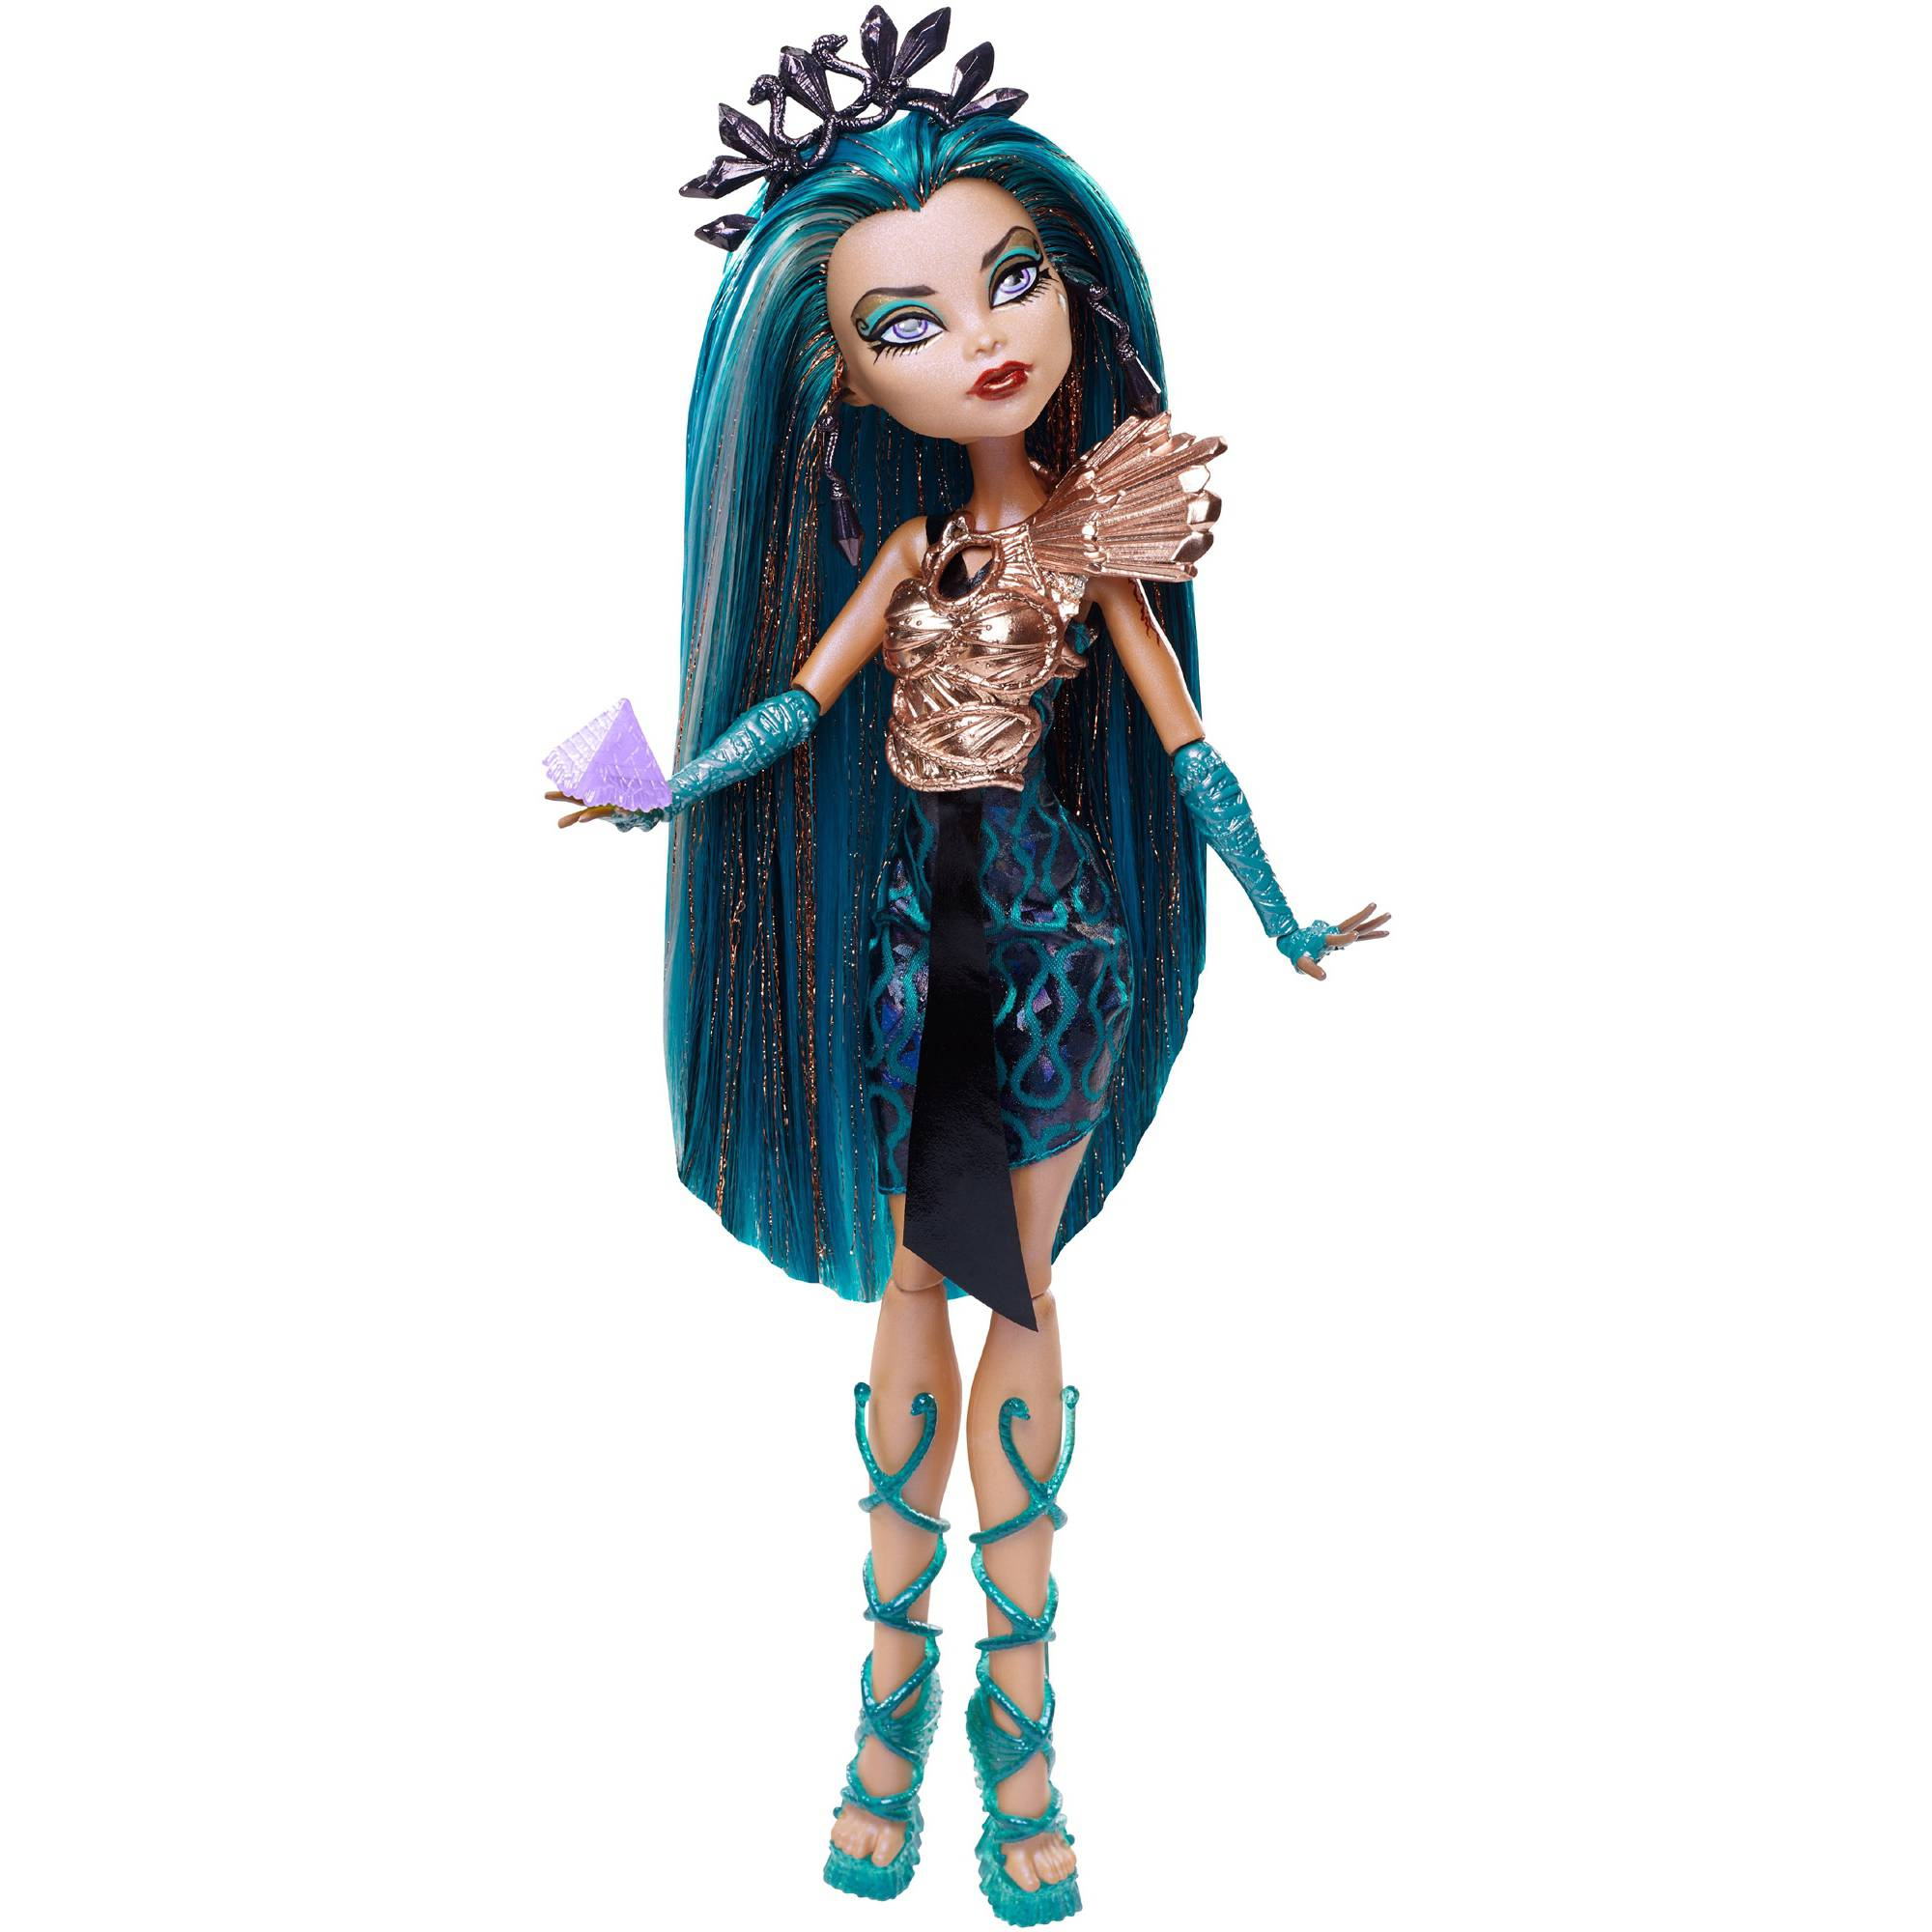 Monster High Boo York, Boo York City Schemes Nefera De Nile Doll by Mattel